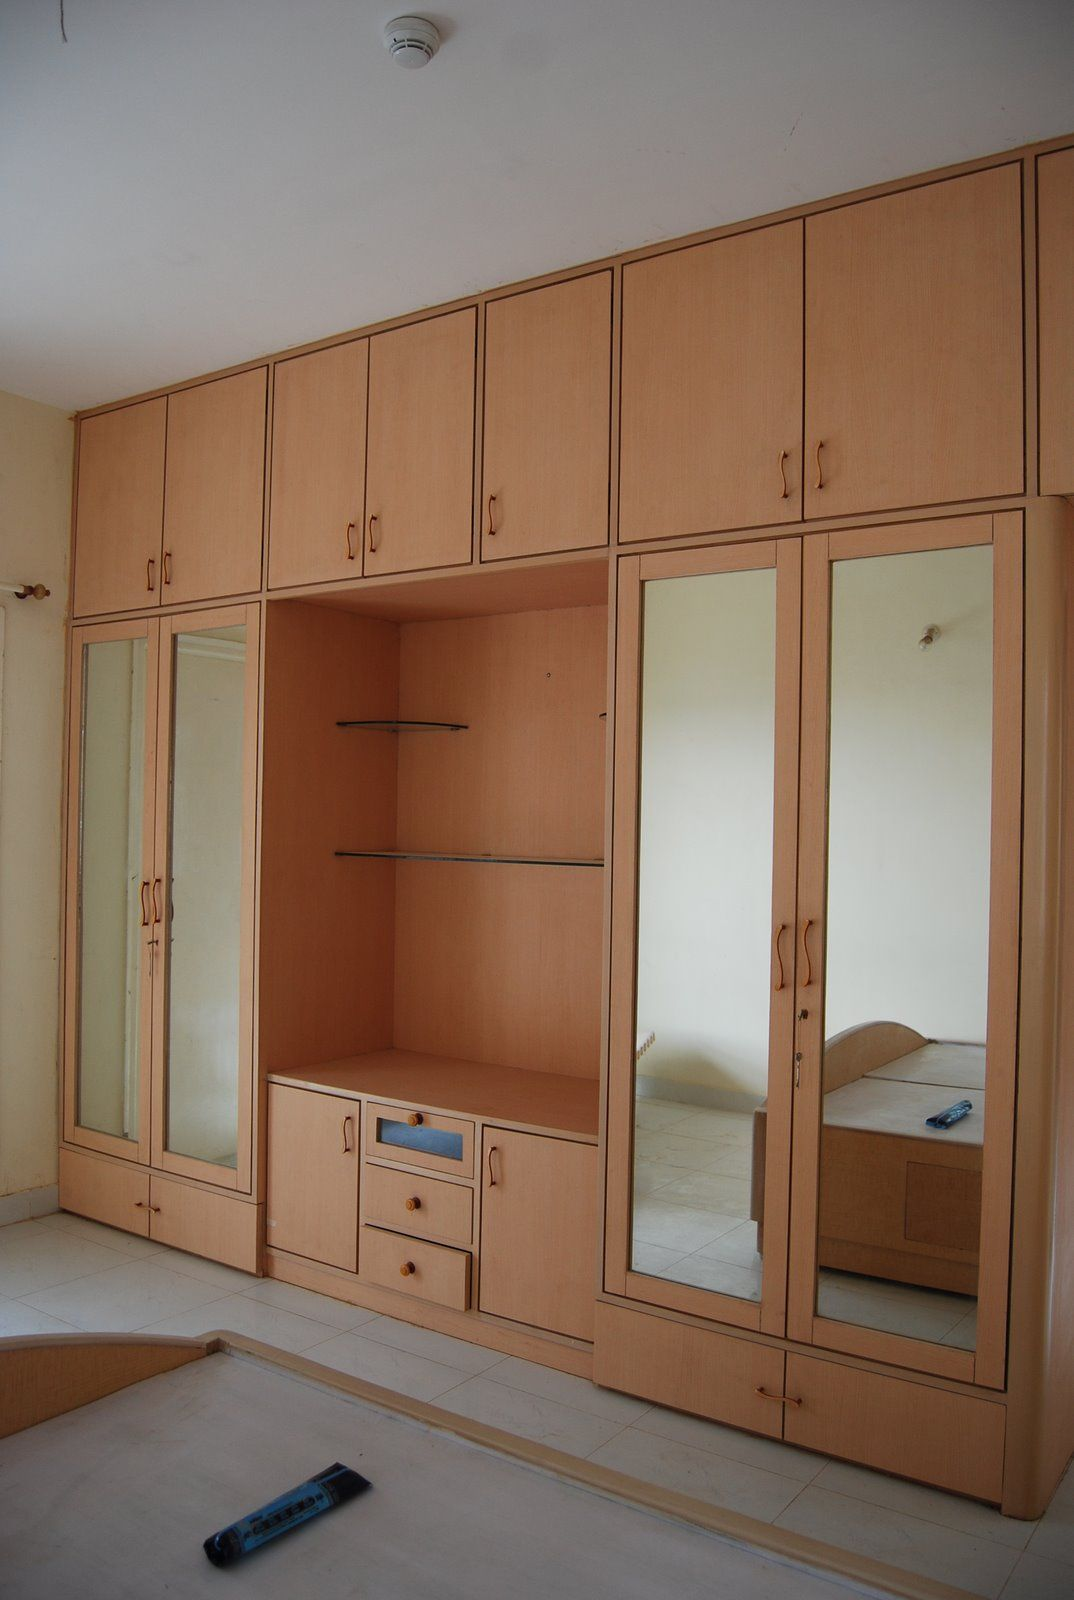 Bedroom Wardrobe Design Playwood Wadrobe With Cabinets